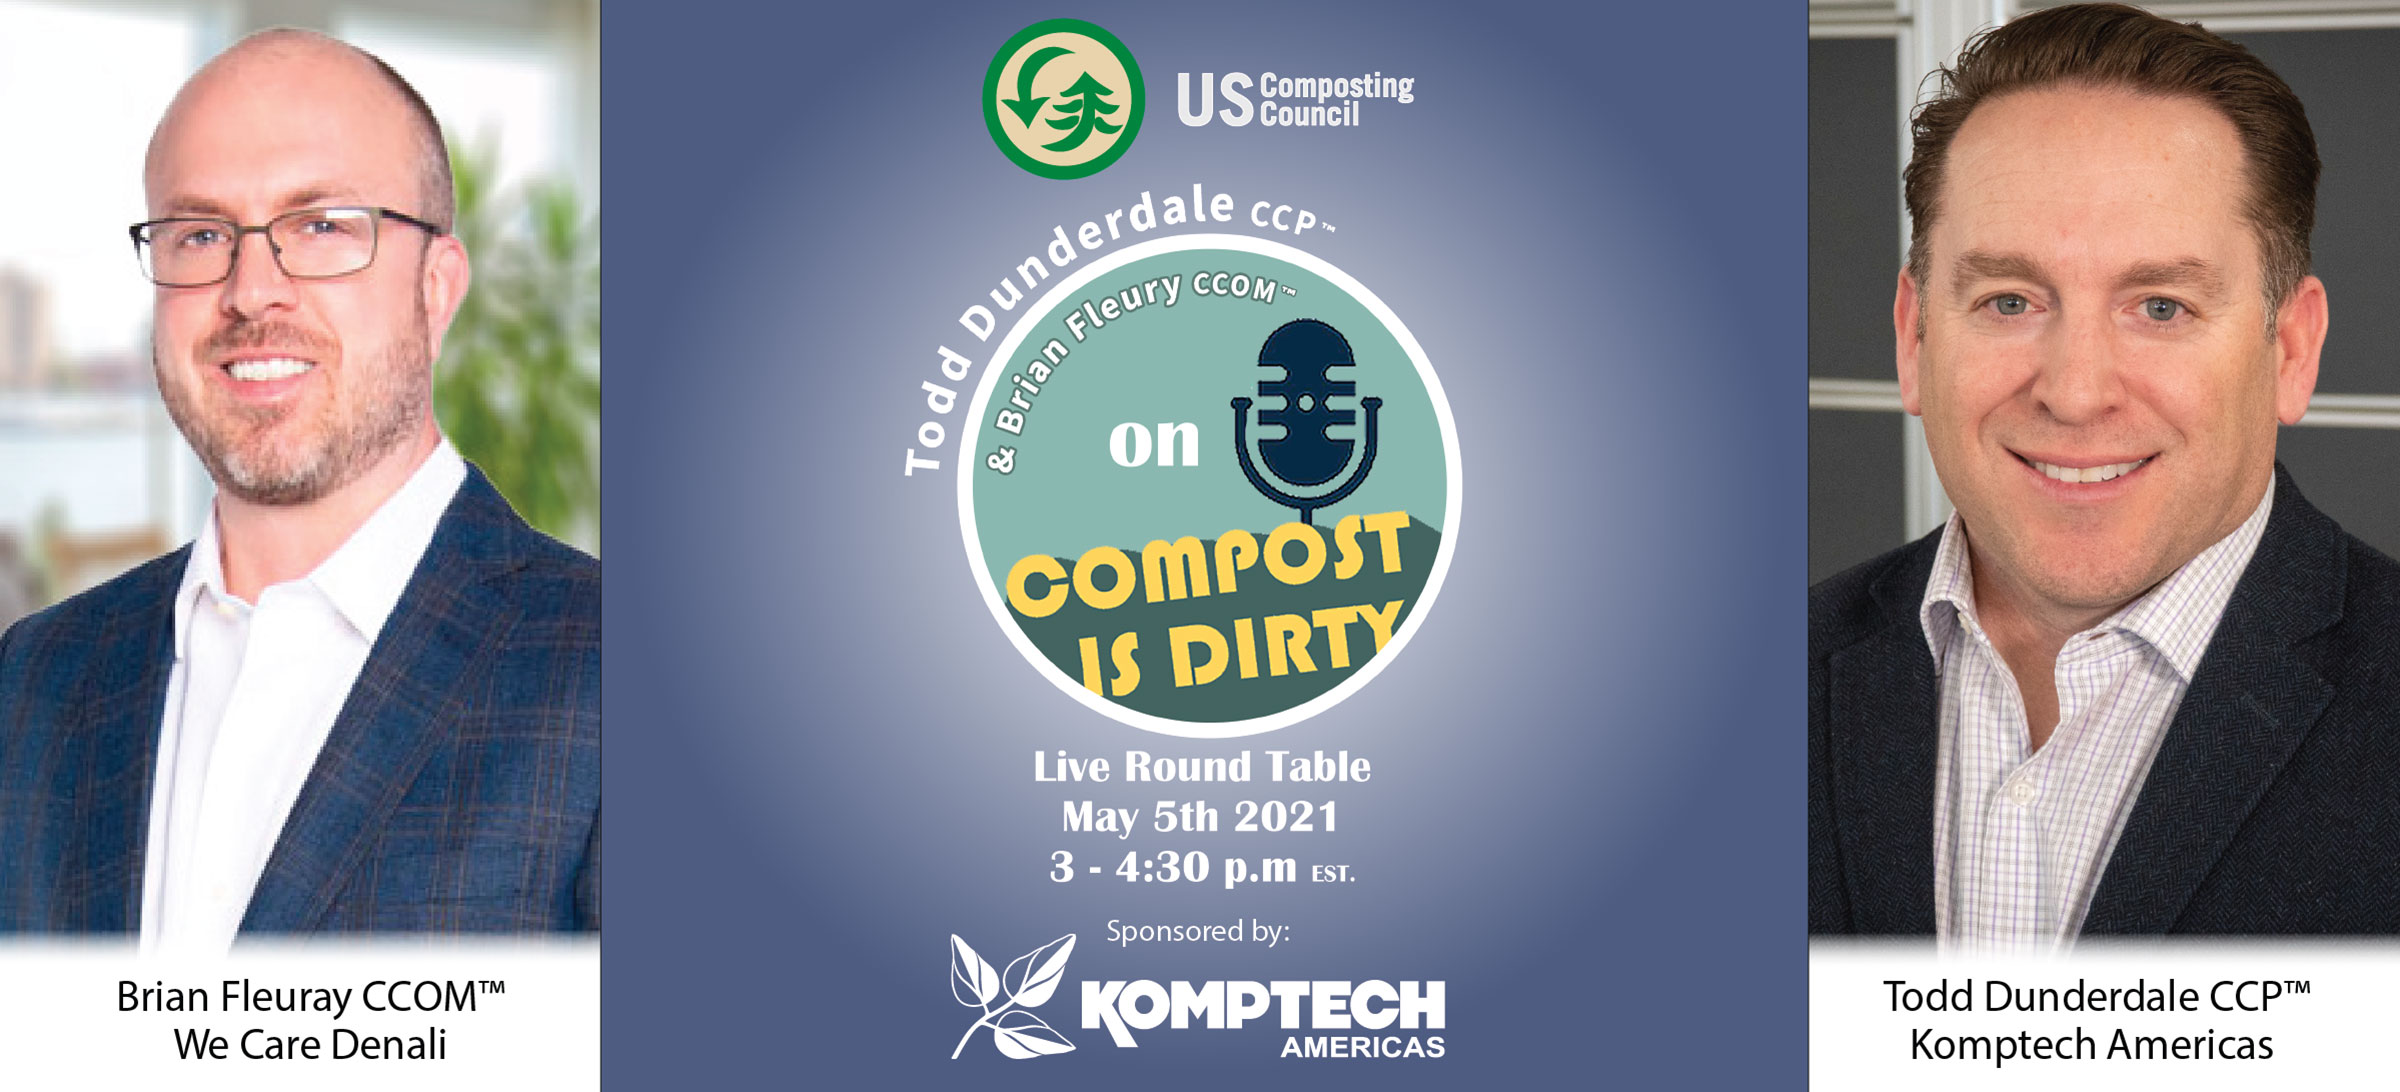 """USCC Webinar titled """"Compost is Dirty"""" featuring Todd Dunderdale."""